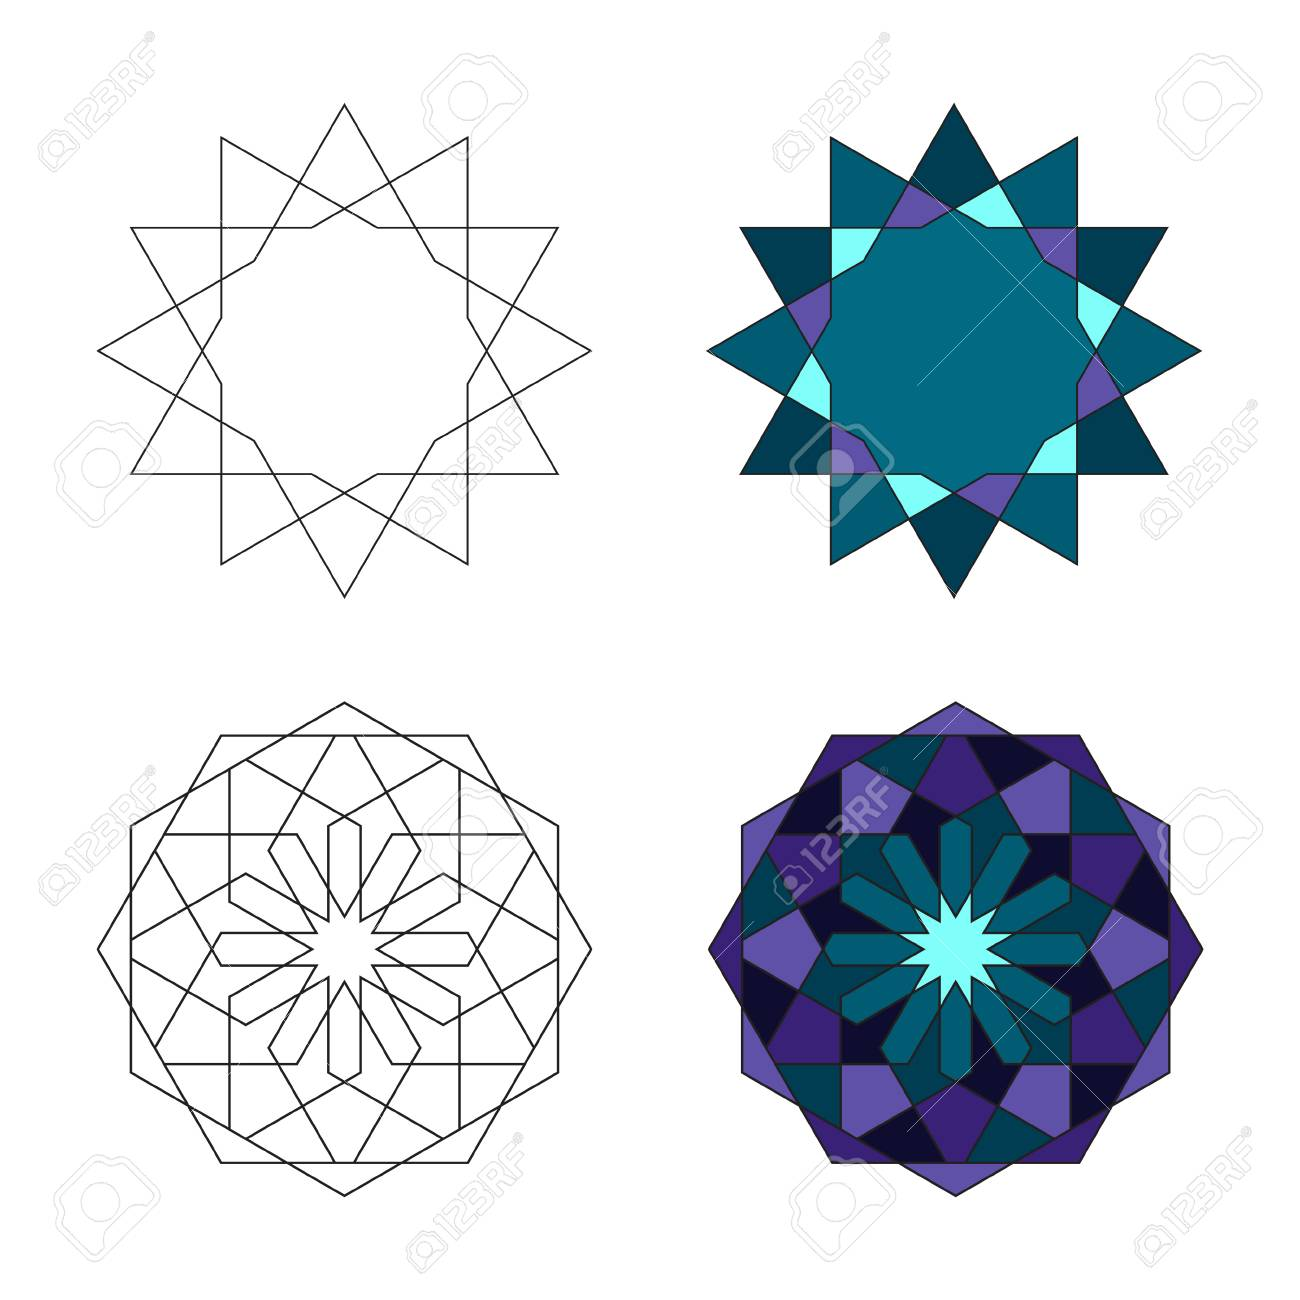 sacred geometry pattern in arabic pattern background ロイヤリティ